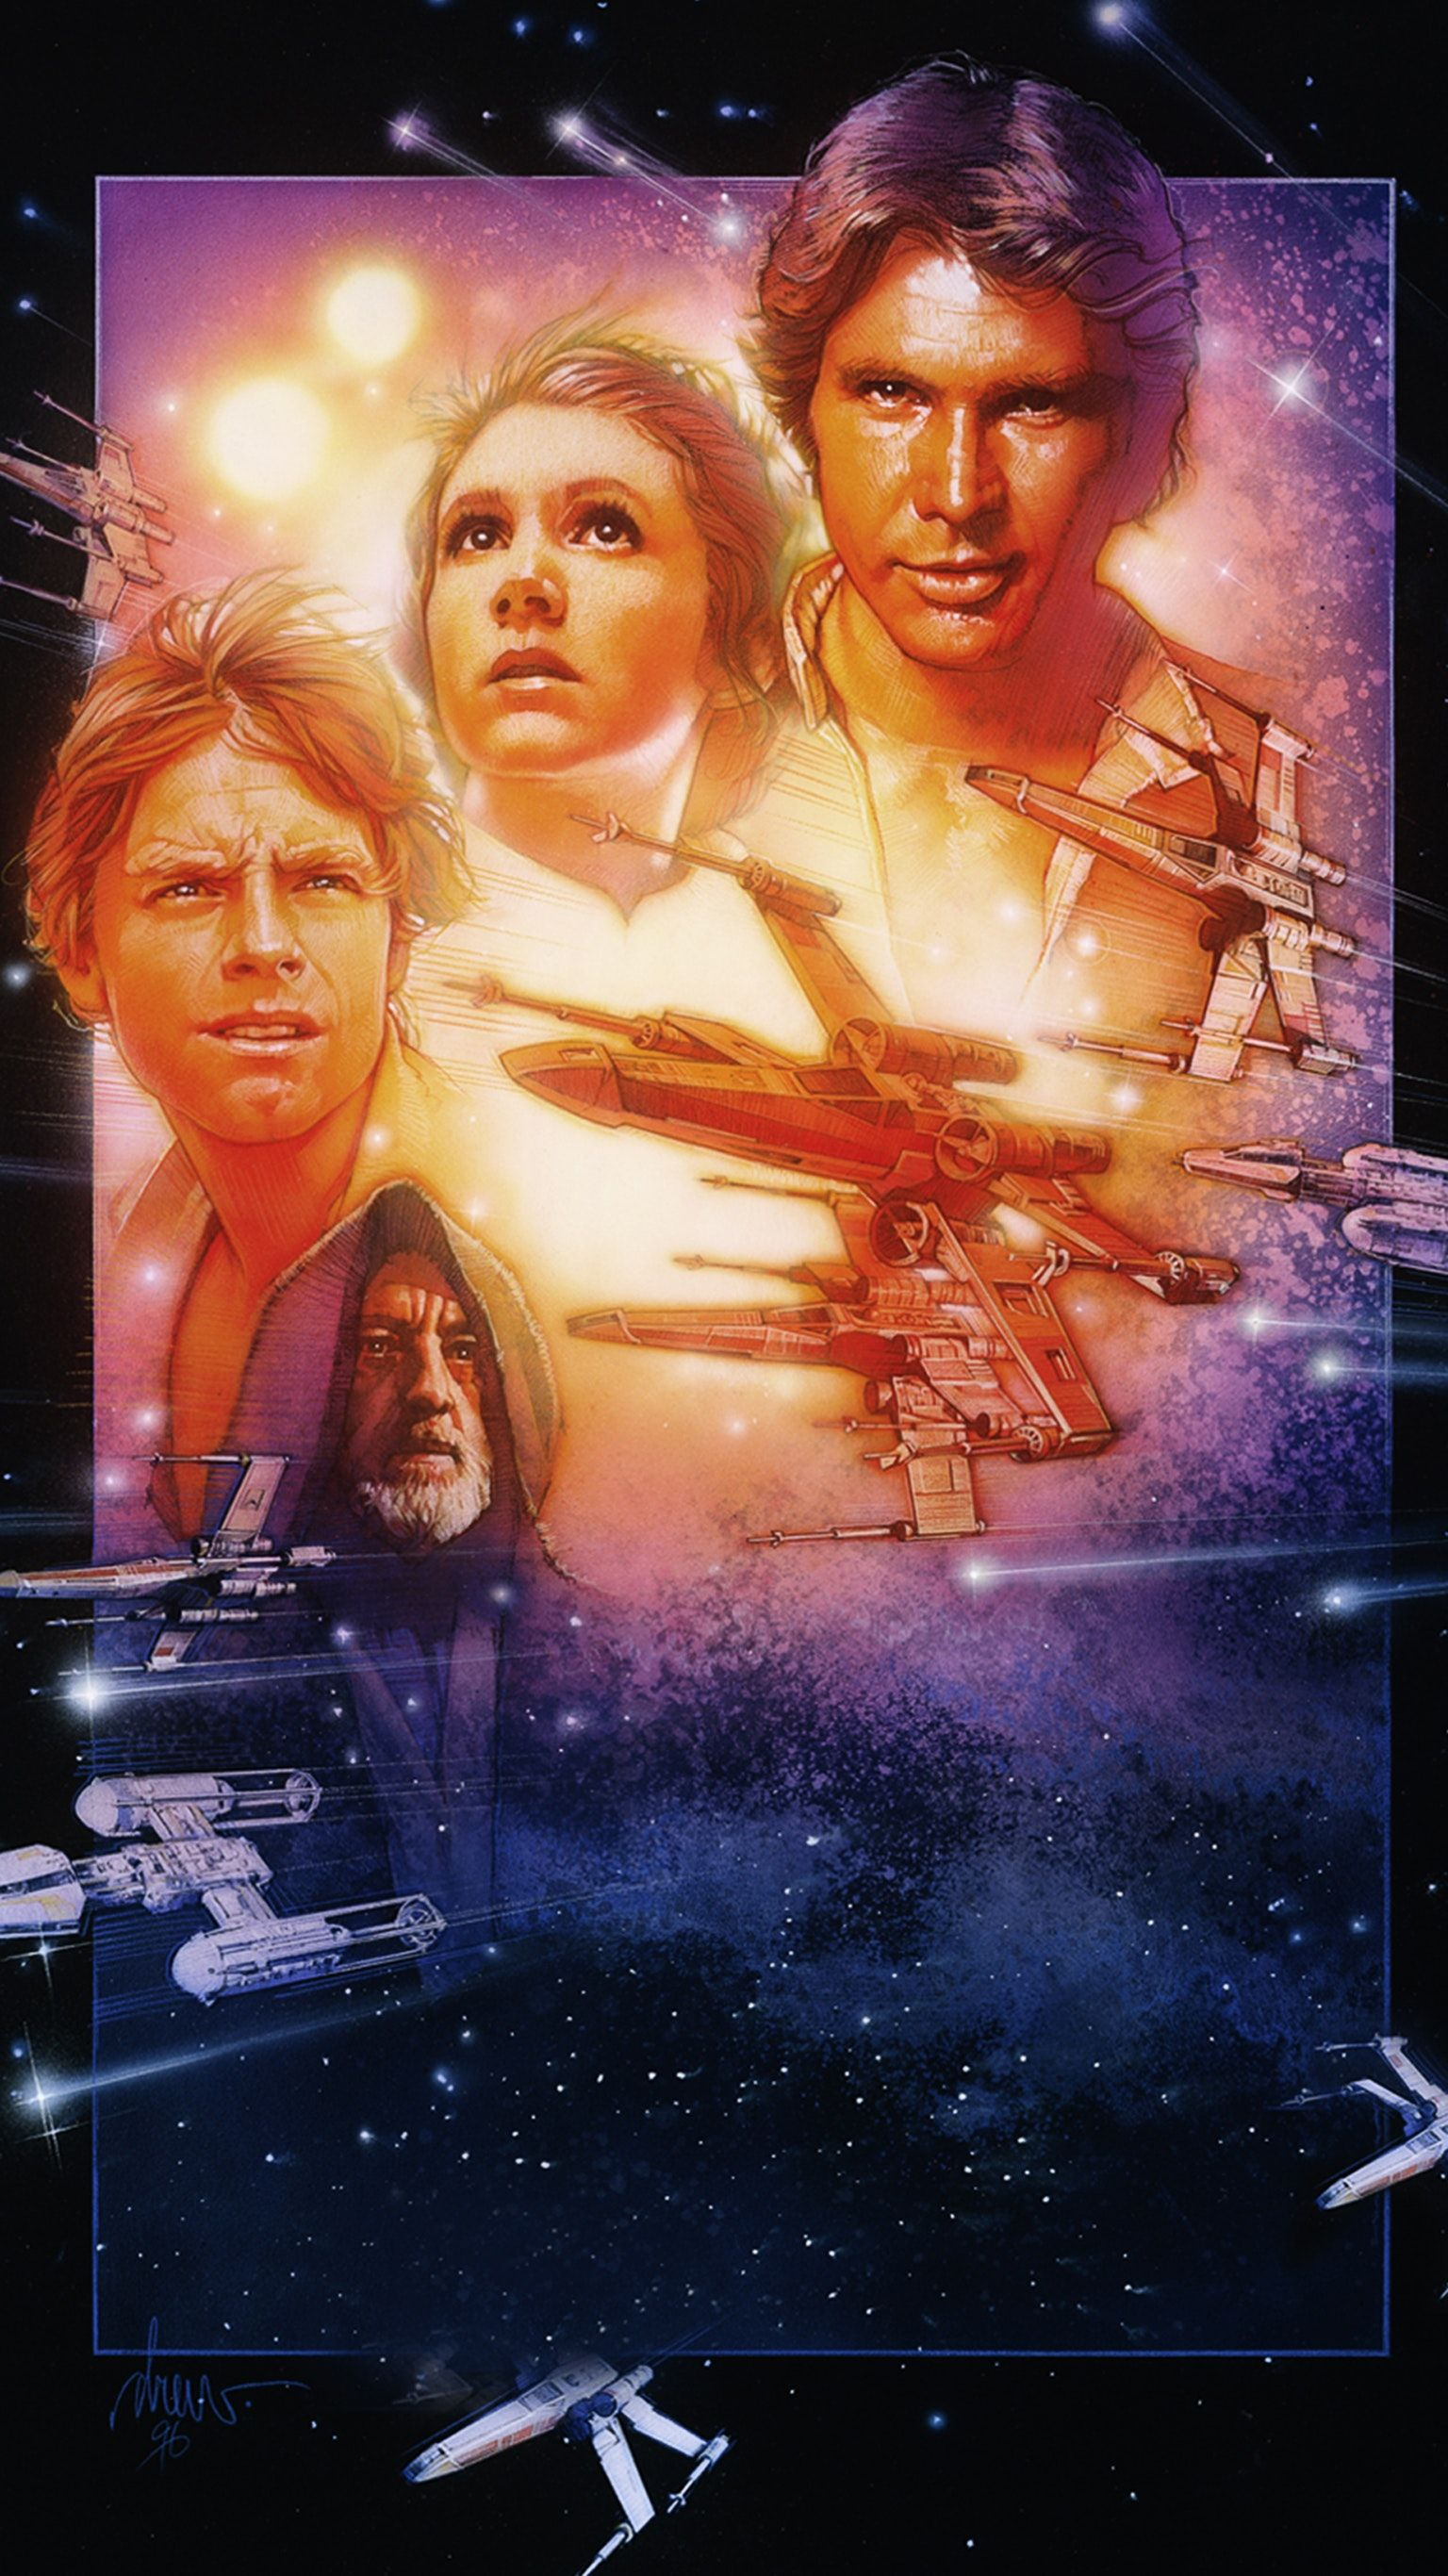 Star Wars 1977 Phone Wallpaper Star Wars Episode Iv Star Wars